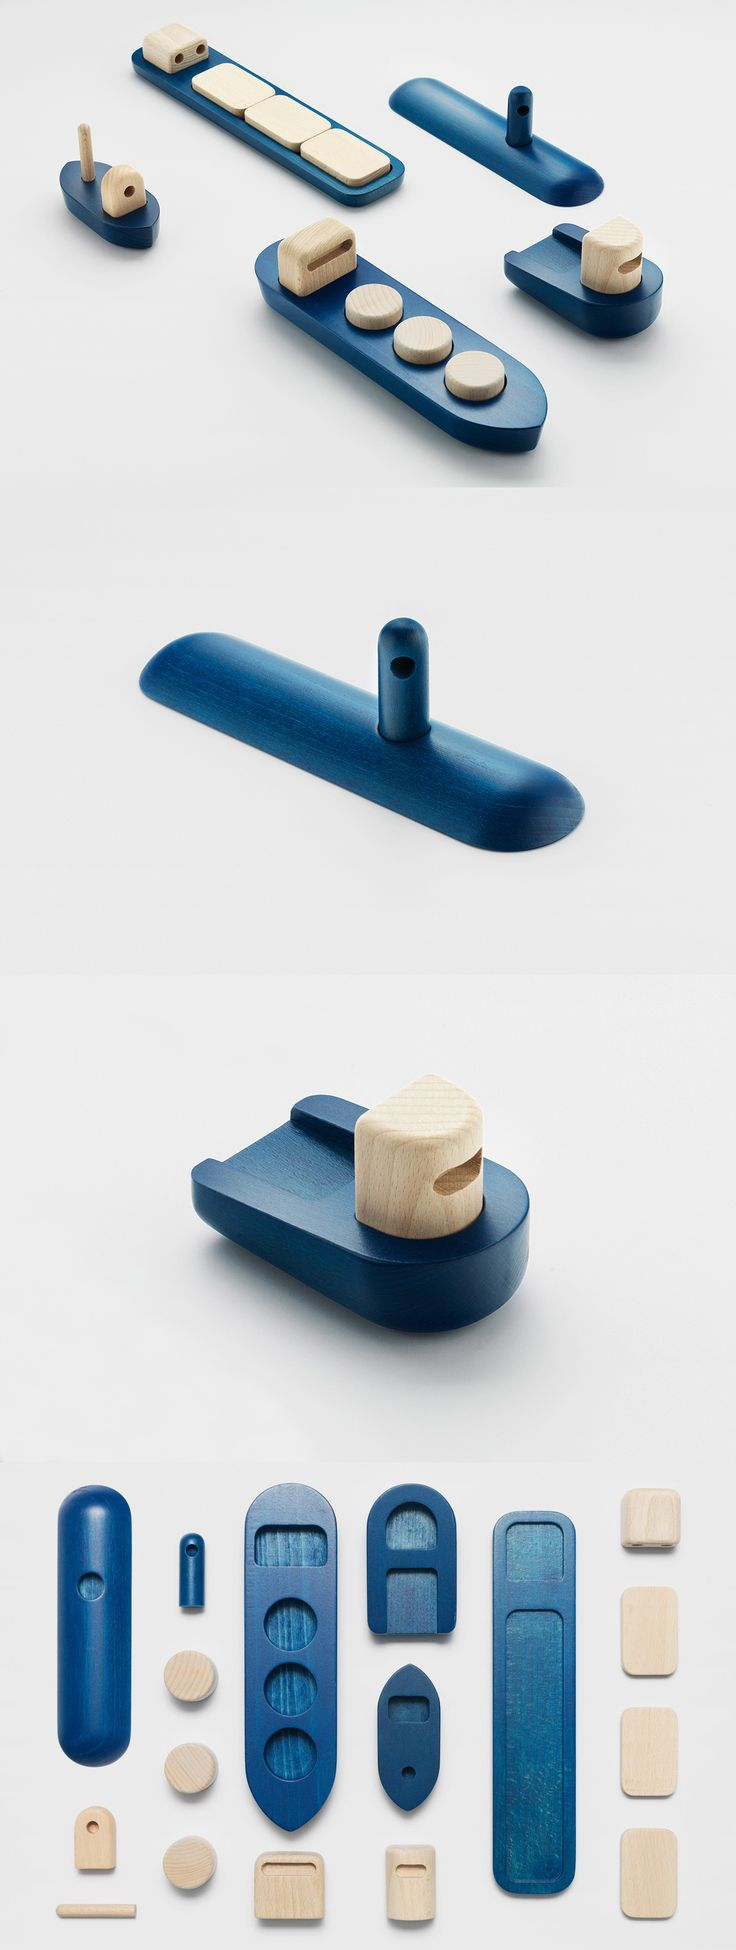 'Shipping': wooden toy set by Permafrost, originally presented during the London Design Festival in 2013